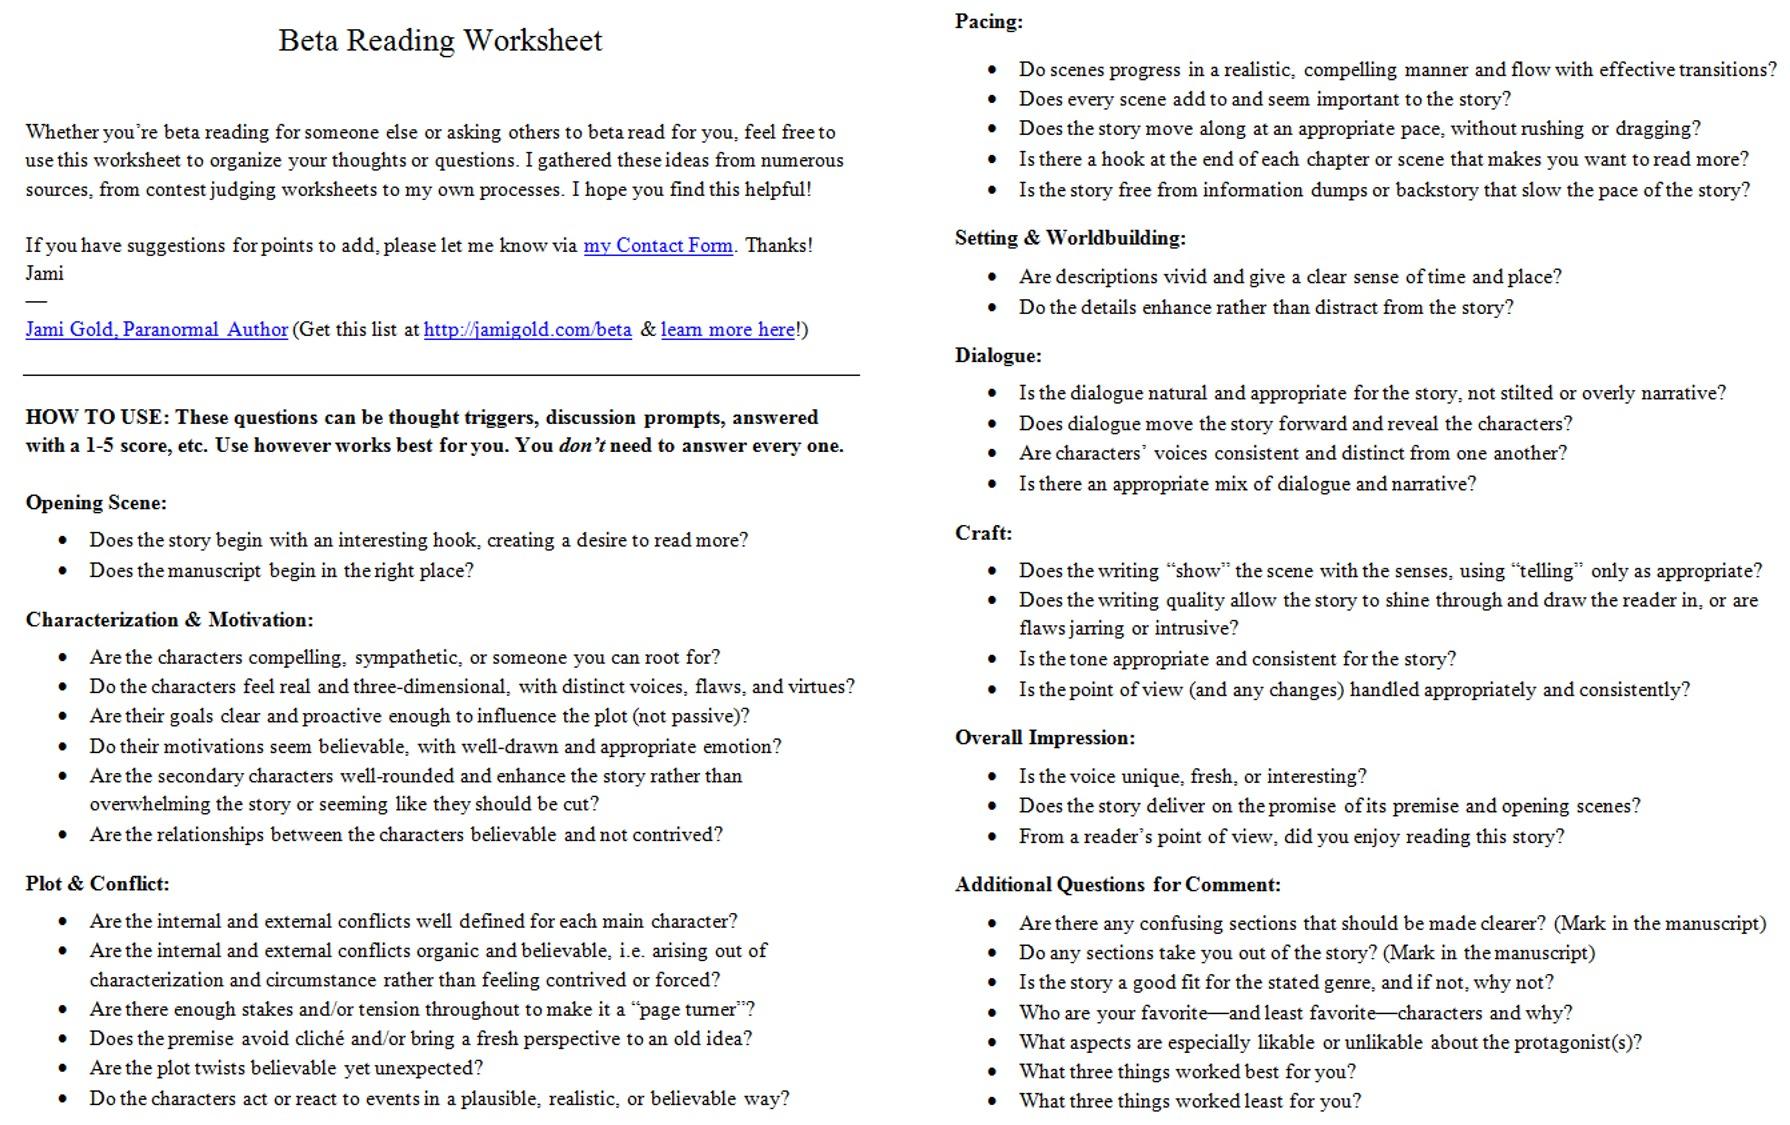 Proatmealus  Marvelous Worksheets For Writers  Jami Gold Paranormal Author With Exquisite Screen Shot Of The Twopage Beta Reading Worksheet With Attractive New Food Pyramid Worksheet Also Verbs Ending In Ed And Ing Worksheets In Addition Halloween Kids Worksheets And Atomic Number Worksheets As Well As Comprehension Worksheets For Year  Additionally Alphabet Worksheets A From Jamigoldcom With Proatmealus  Exquisite Worksheets For Writers  Jami Gold Paranormal Author With Attractive Screen Shot Of The Twopage Beta Reading Worksheet And Marvelous New Food Pyramid Worksheet Also Verbs Ending In Ed And Ing Worksheets In Addition Halloween Kids Worksheets From Jamigoldcom